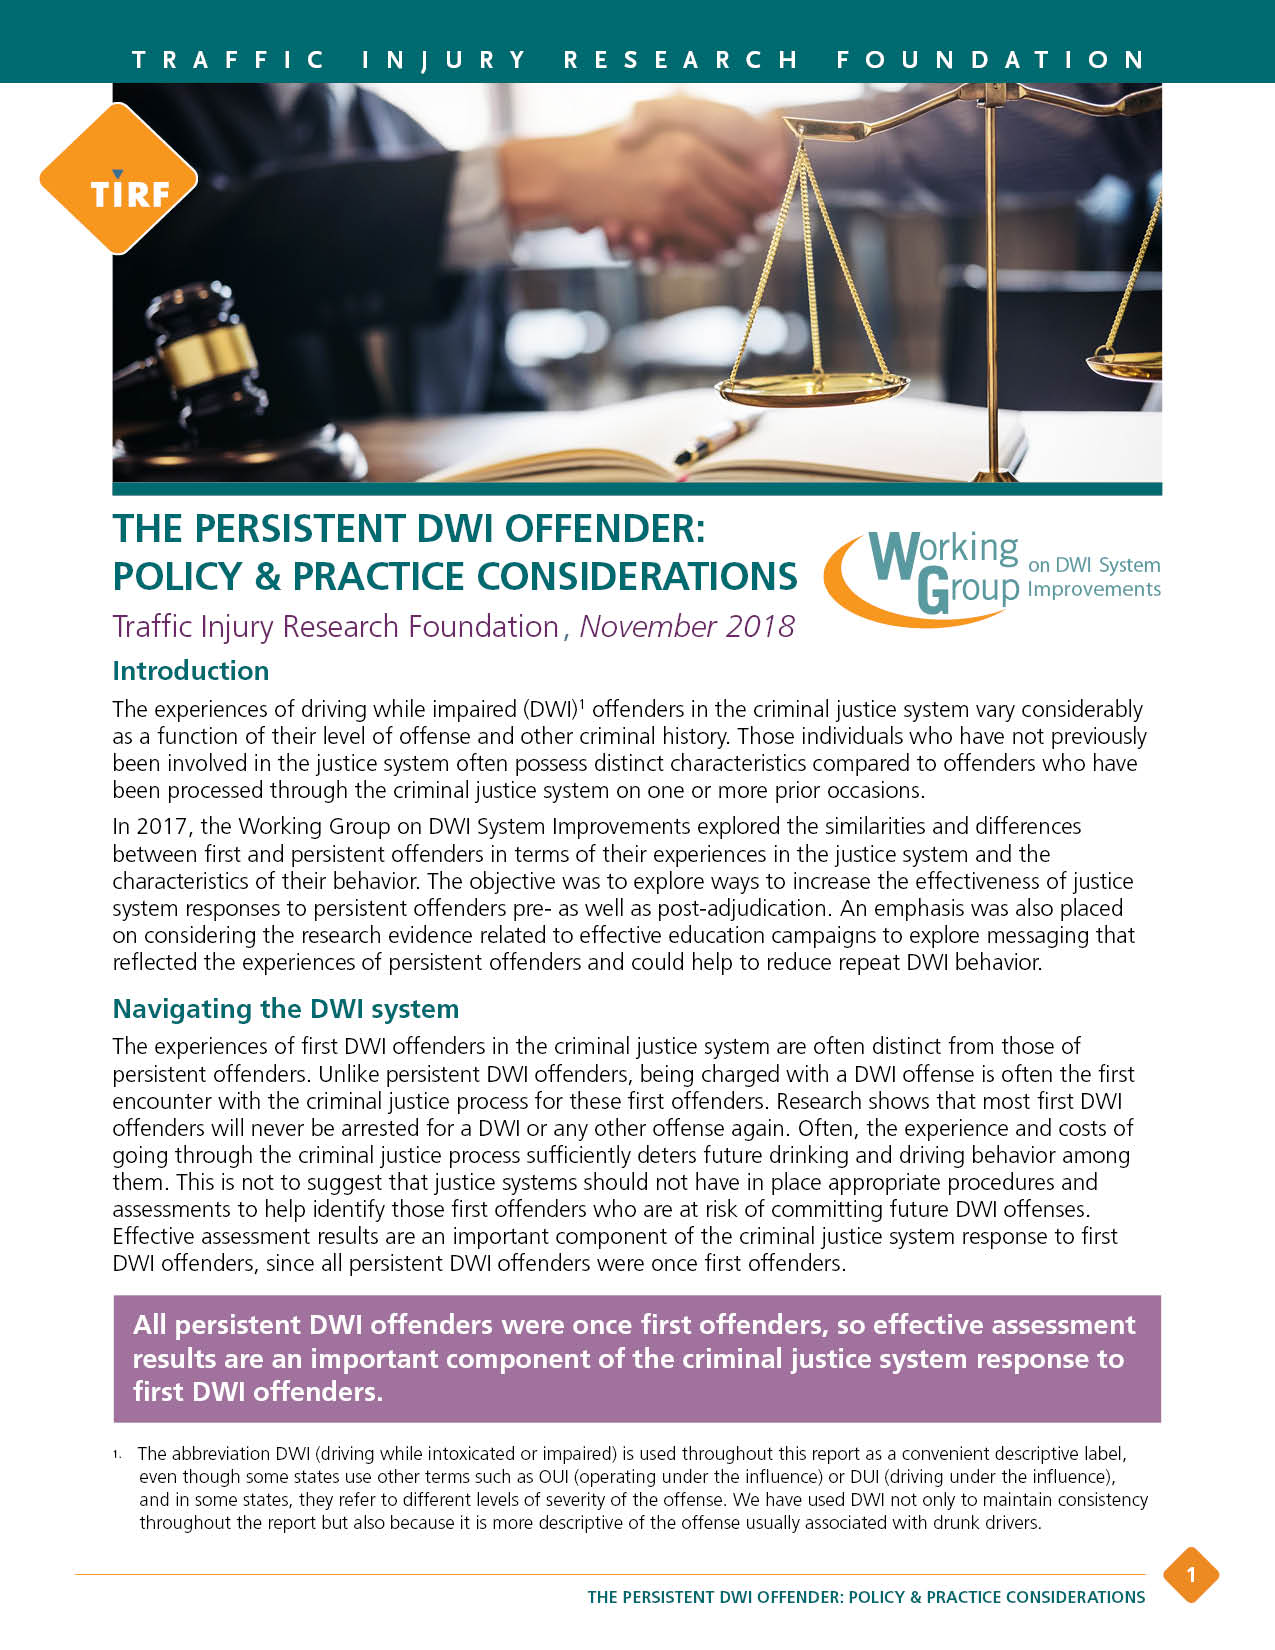 WG 2017 – The Persistent DWI Offender Policy & Practice Considerations